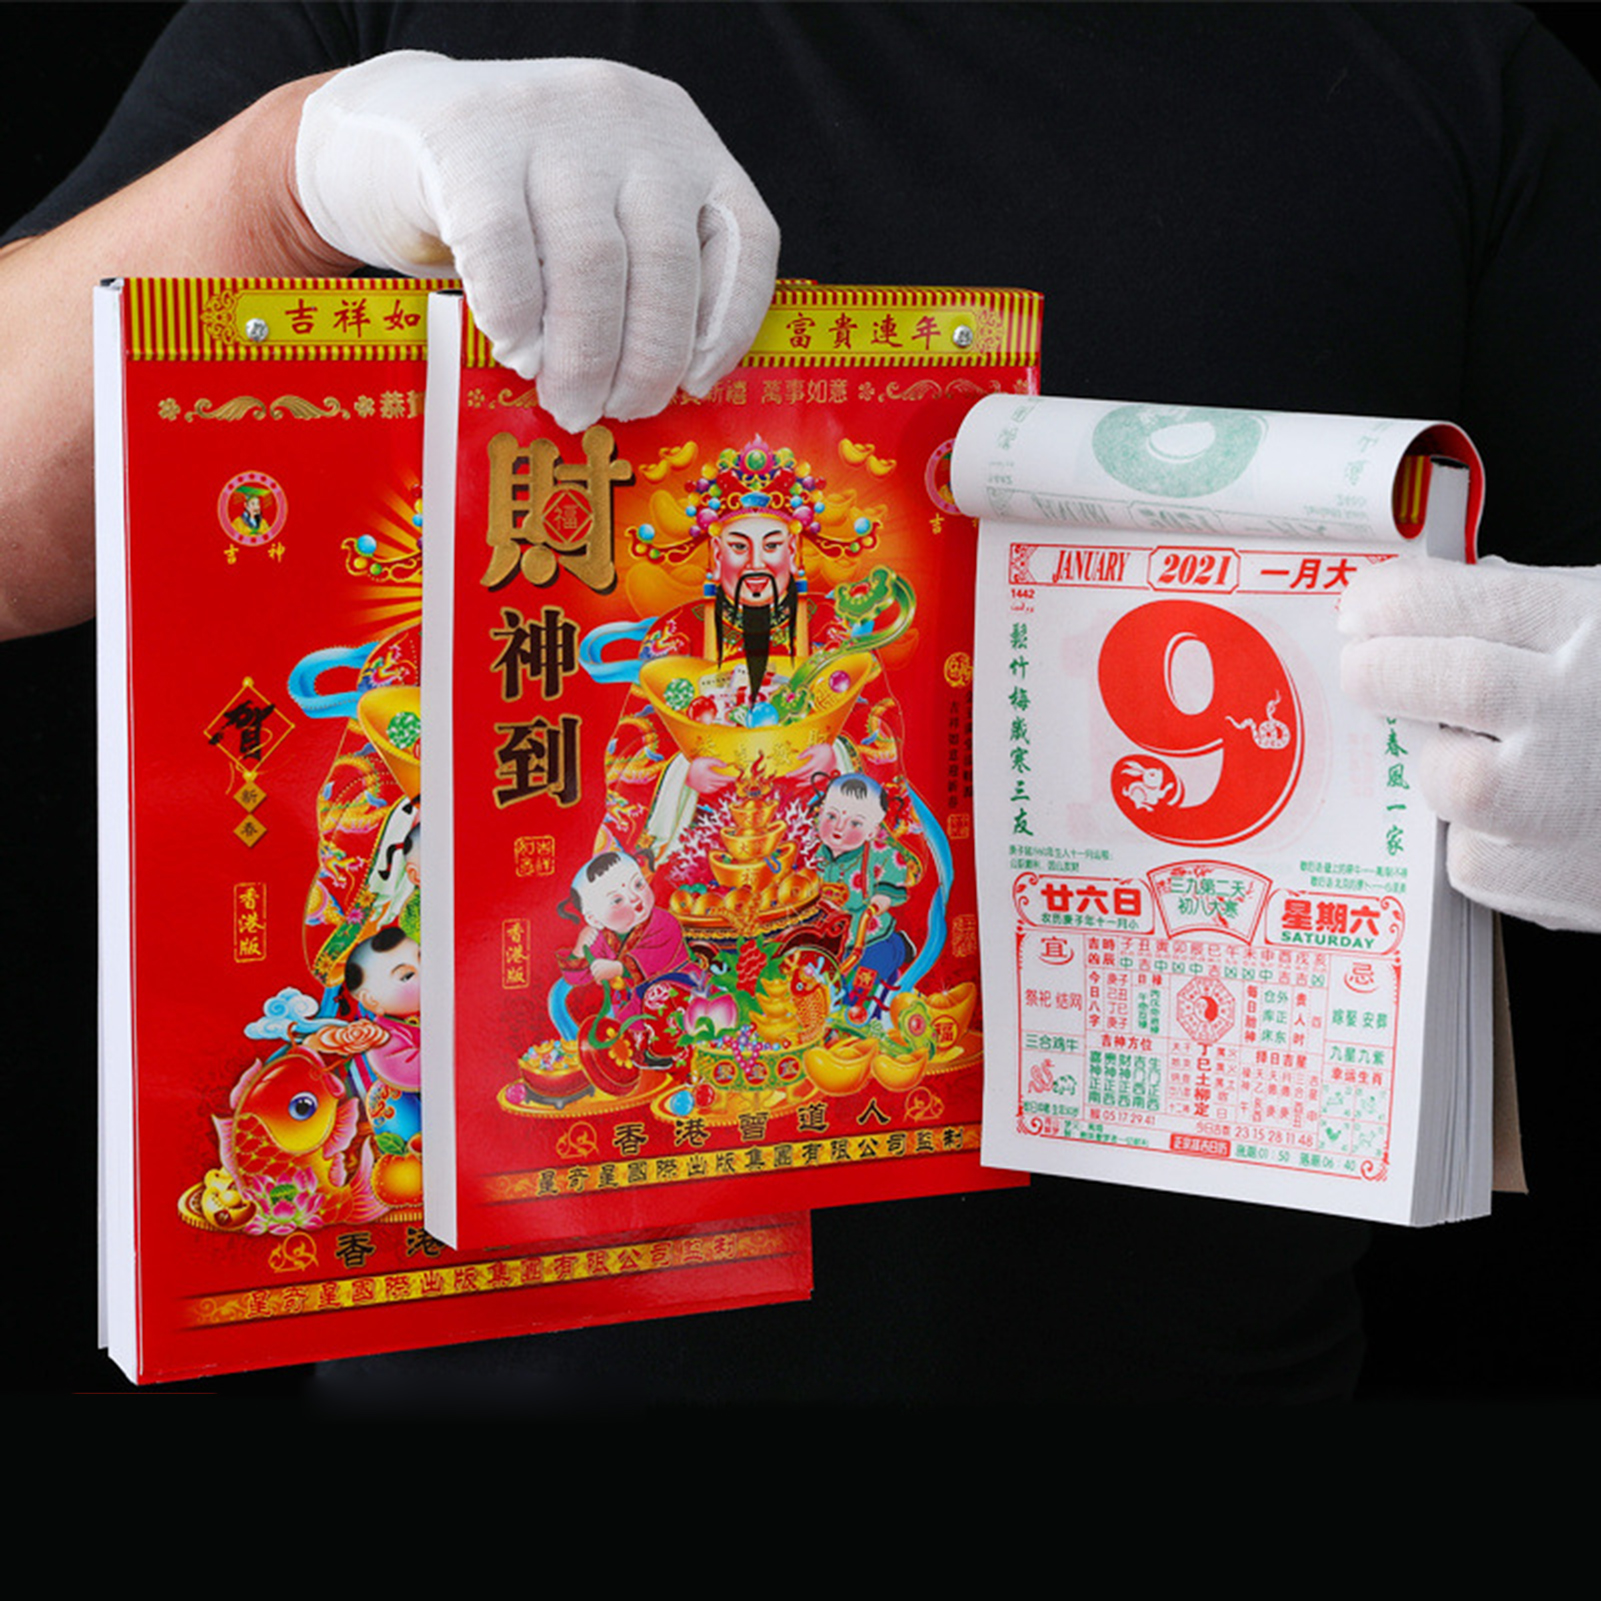 2021 Annual Chinese Calendar Agenda Daily Scheduler Home Office Hanging Decor